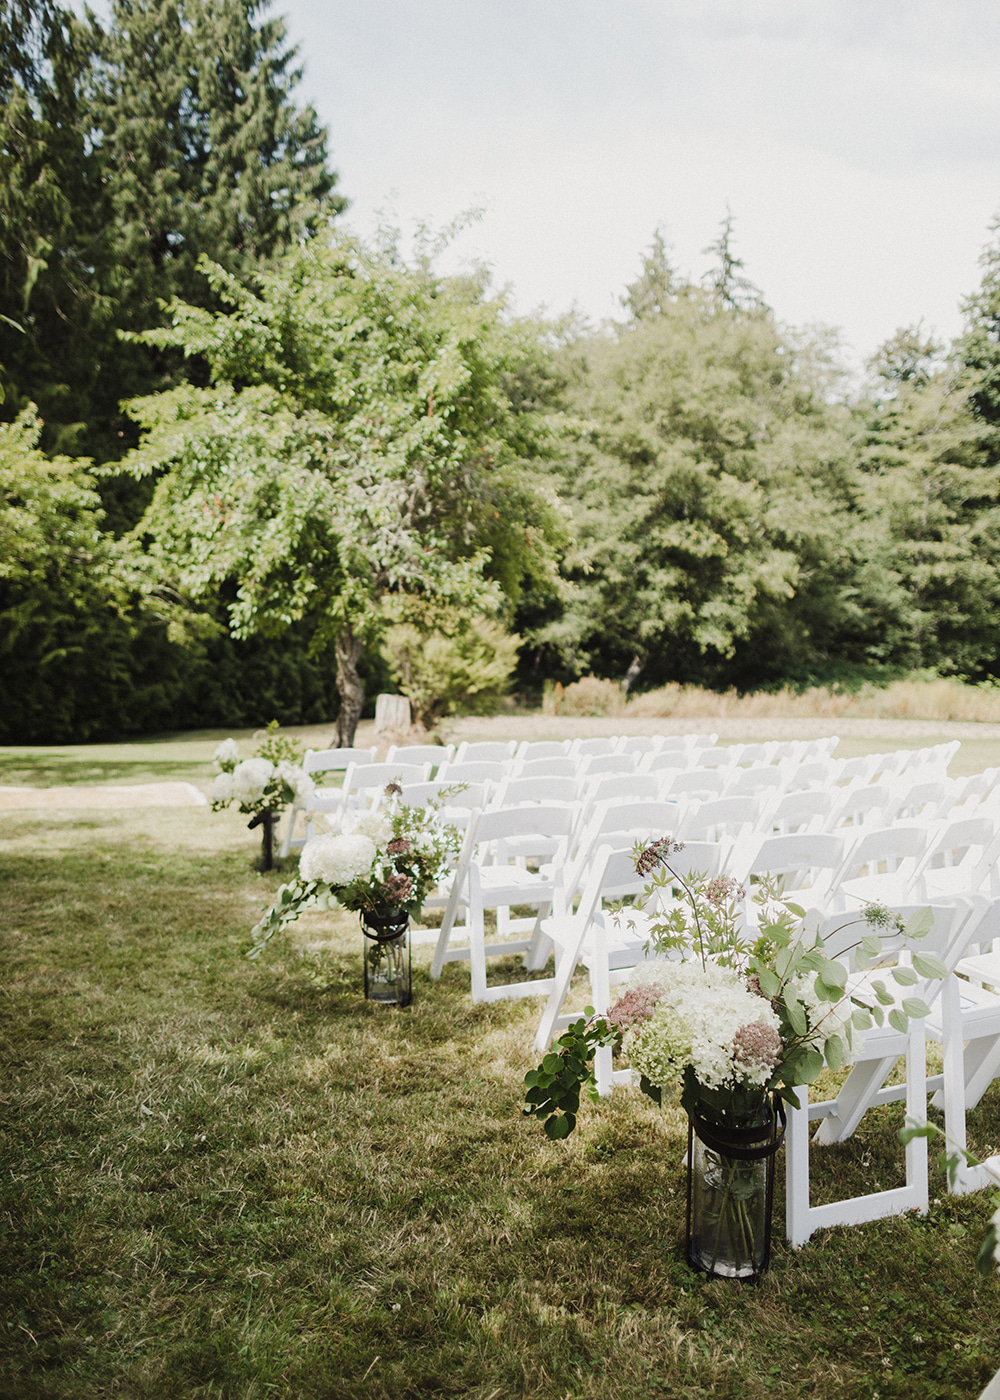 seattle bride, seattle wedding, wedding photography, wedding inspiration, outdoor wedding, washington wedding